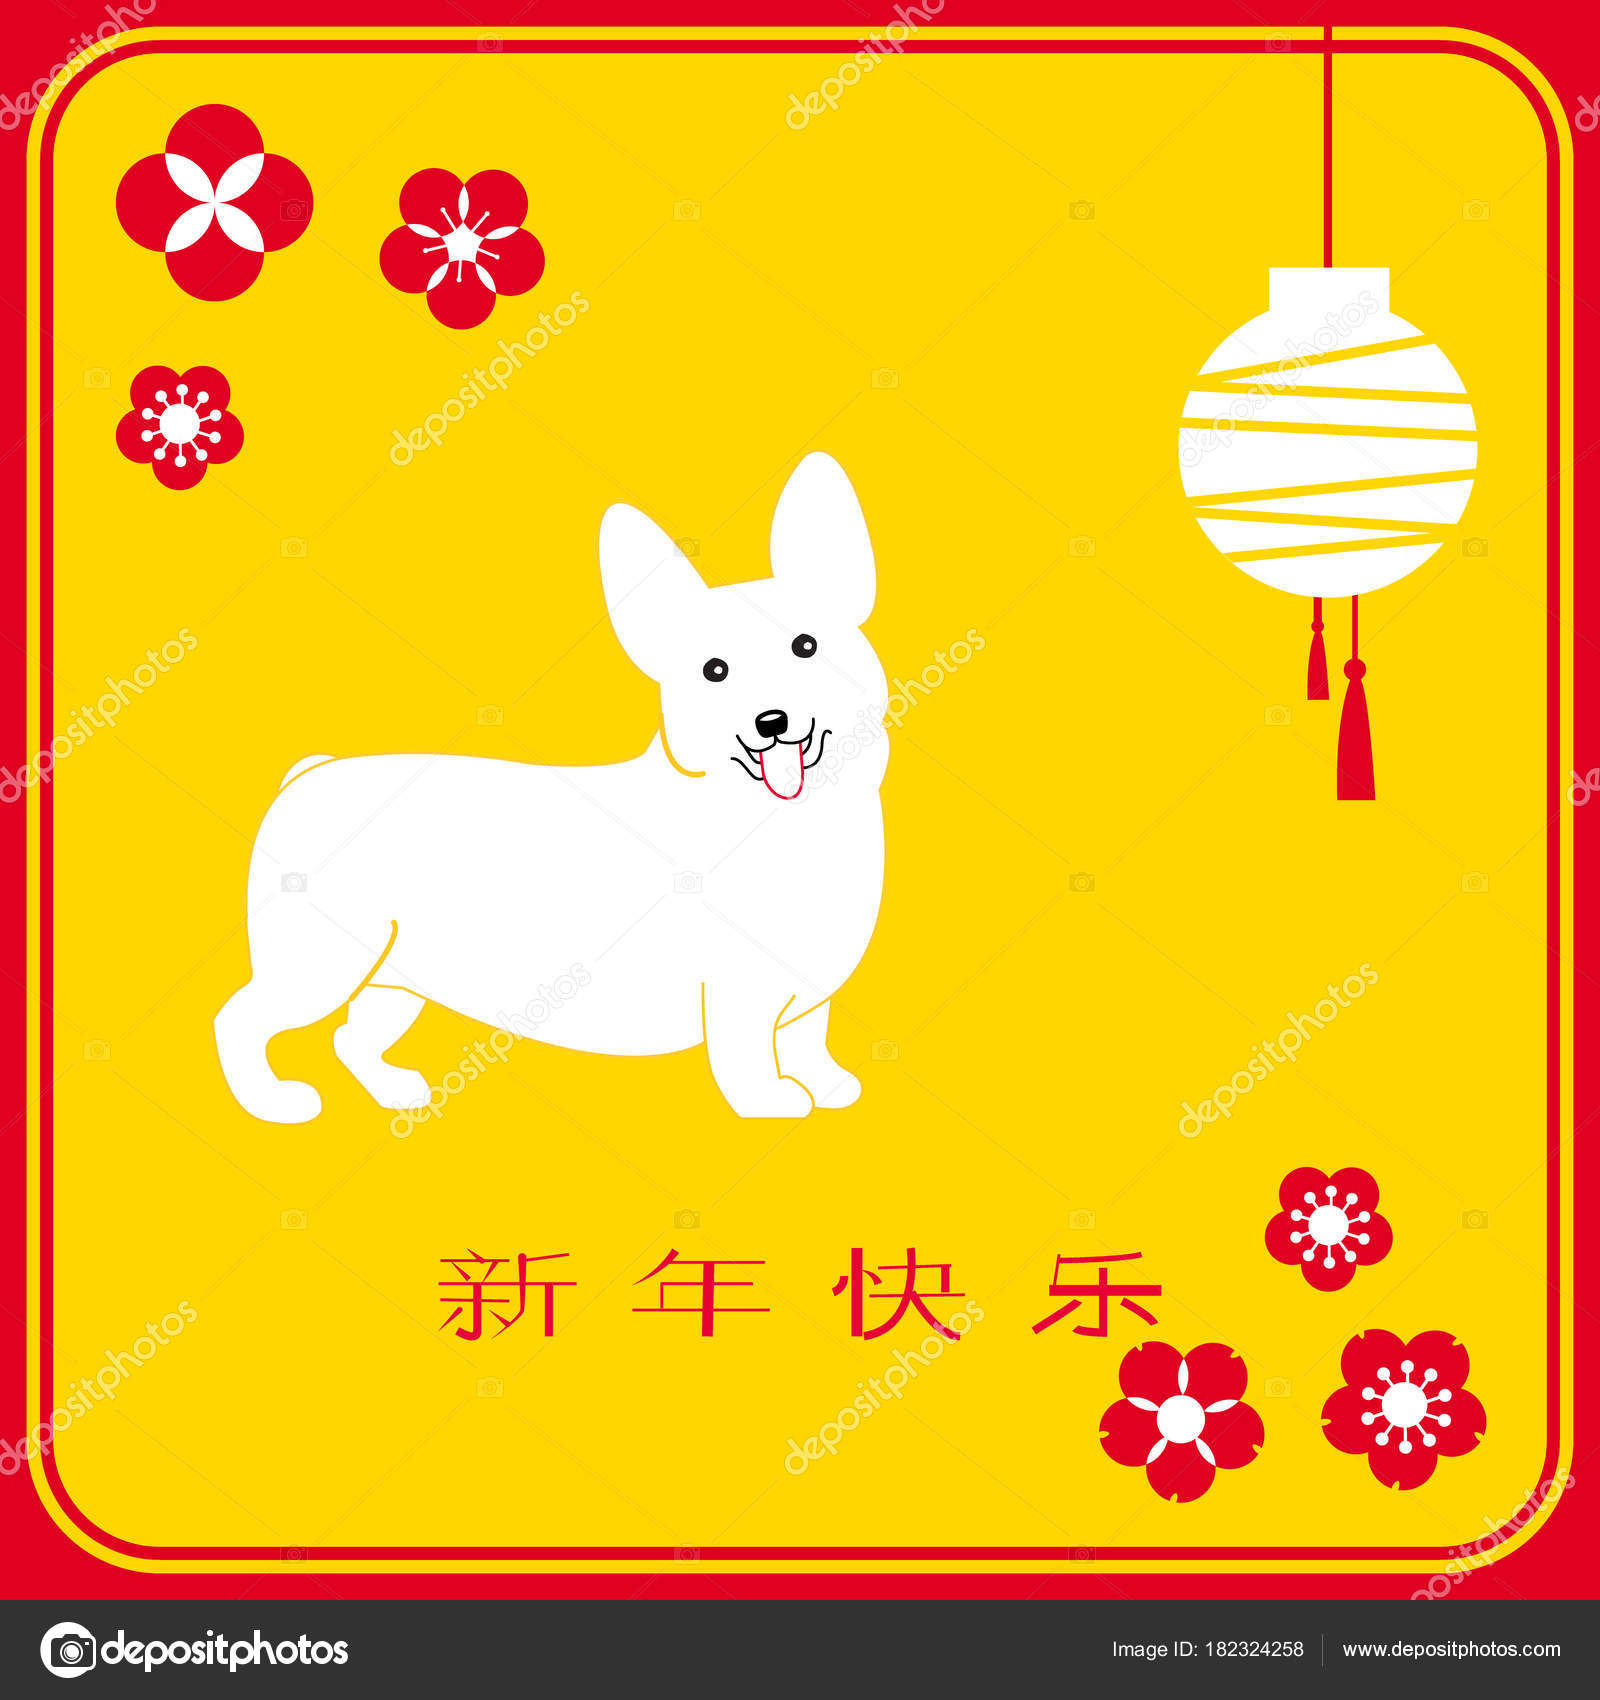 2018 chinese new year greeting card banner with cute funny dog 2018 chinese new year greeting card banner with cute funny dog clouds flowers text translation happy new year isolated objects vector illustration m4hsunfo